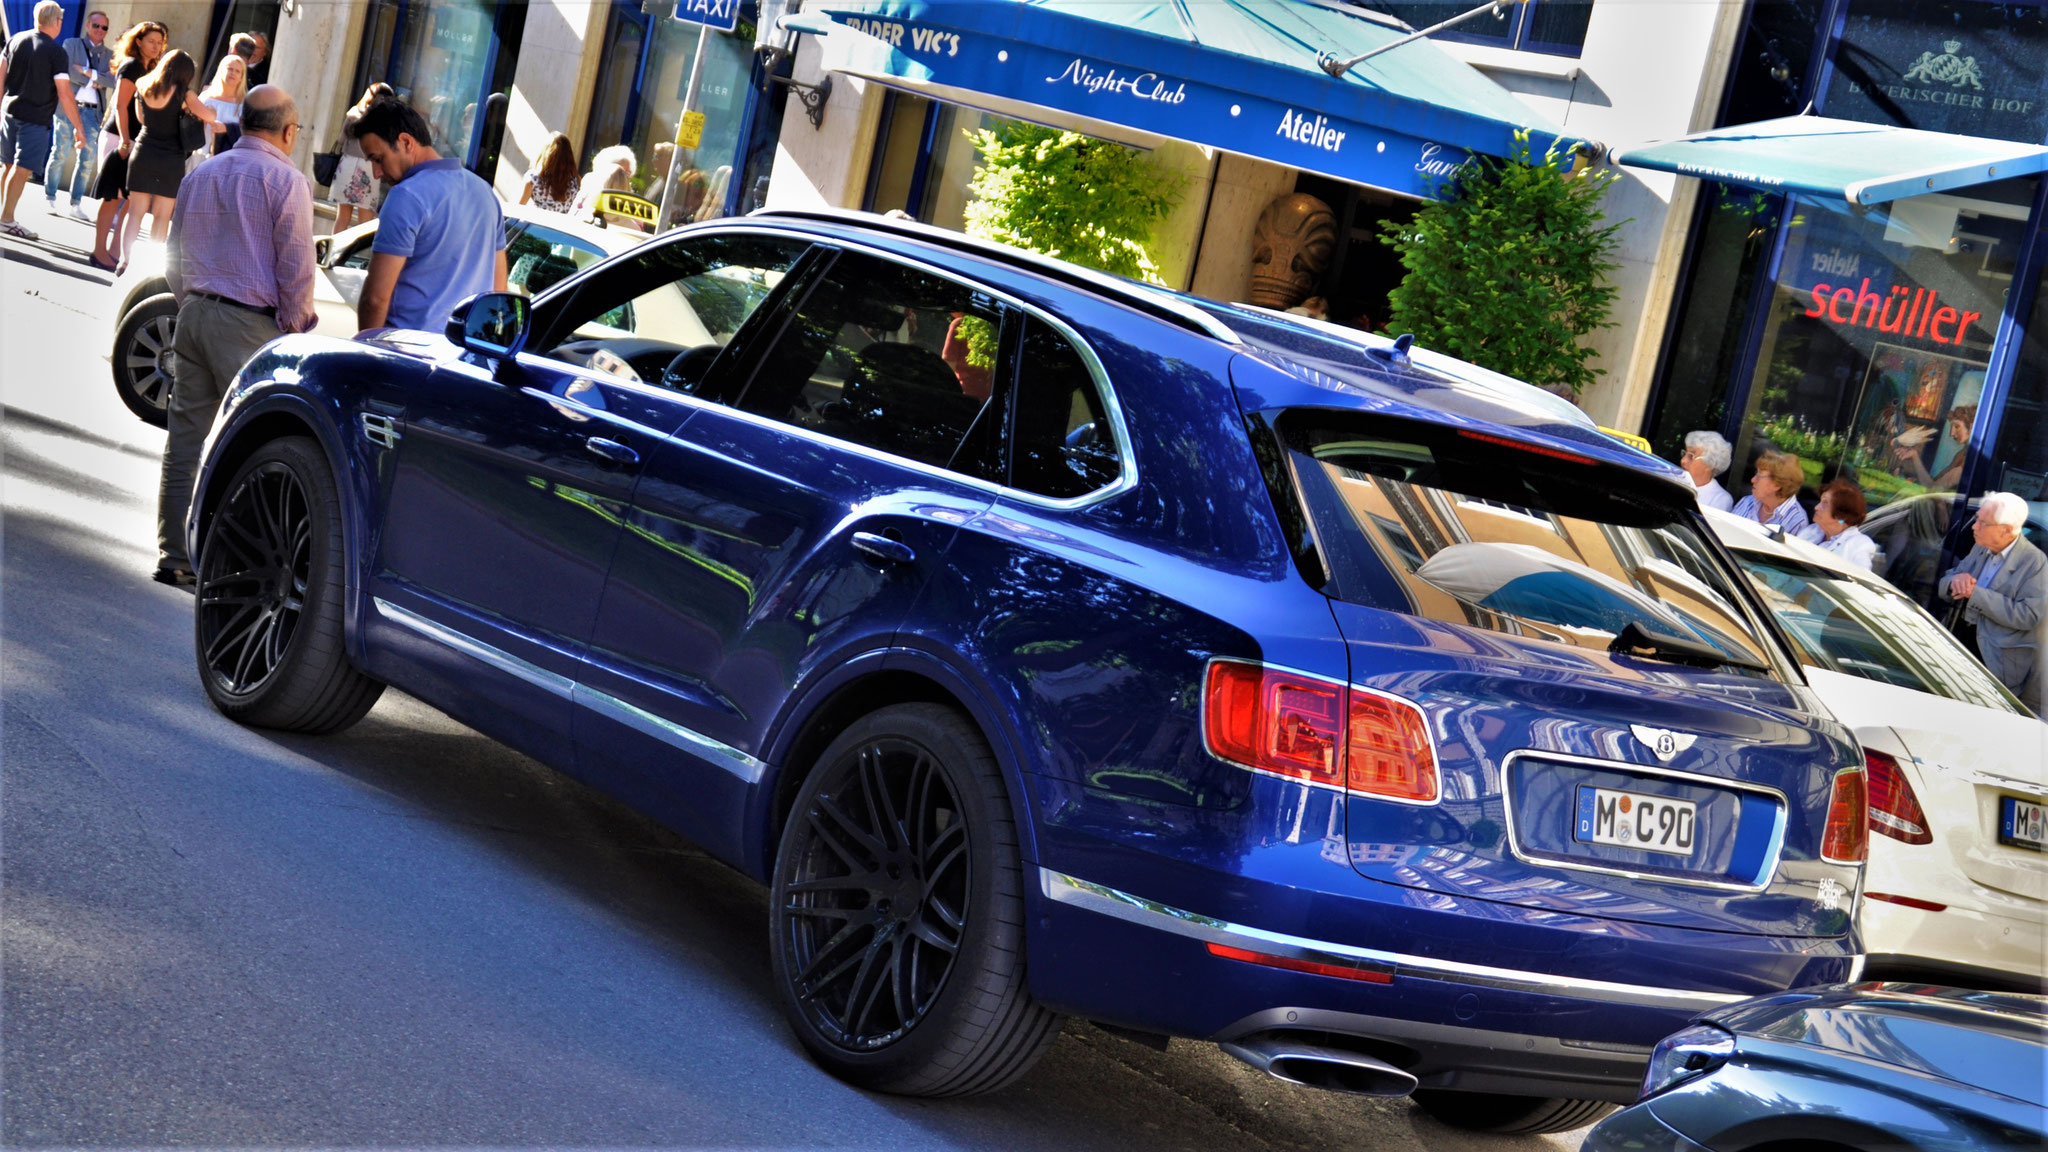 Bentley Bentayga - M-C-90